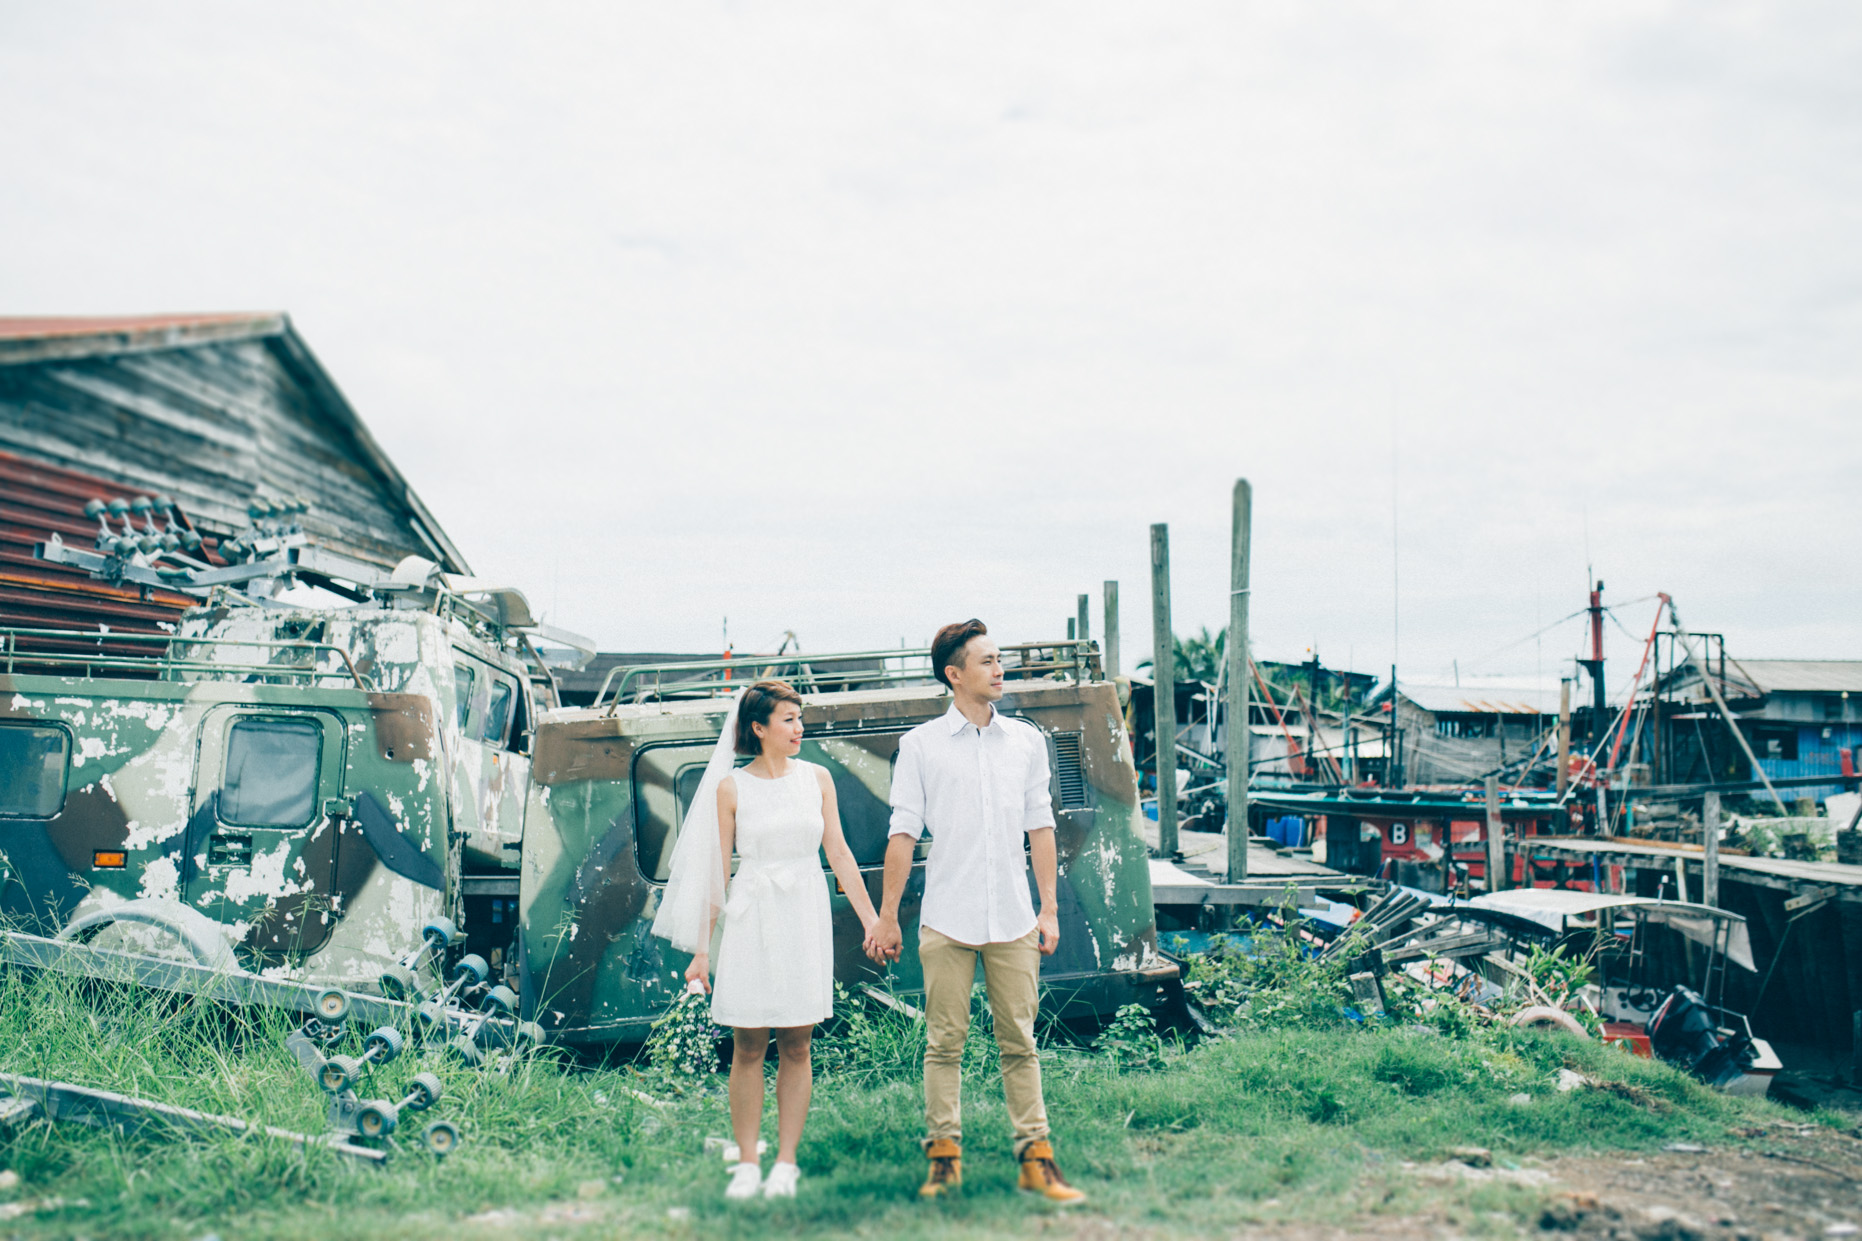 42-hellojanelee-singapore-malaysia-wedding-photographer-prewedding-carrie-sekinchan